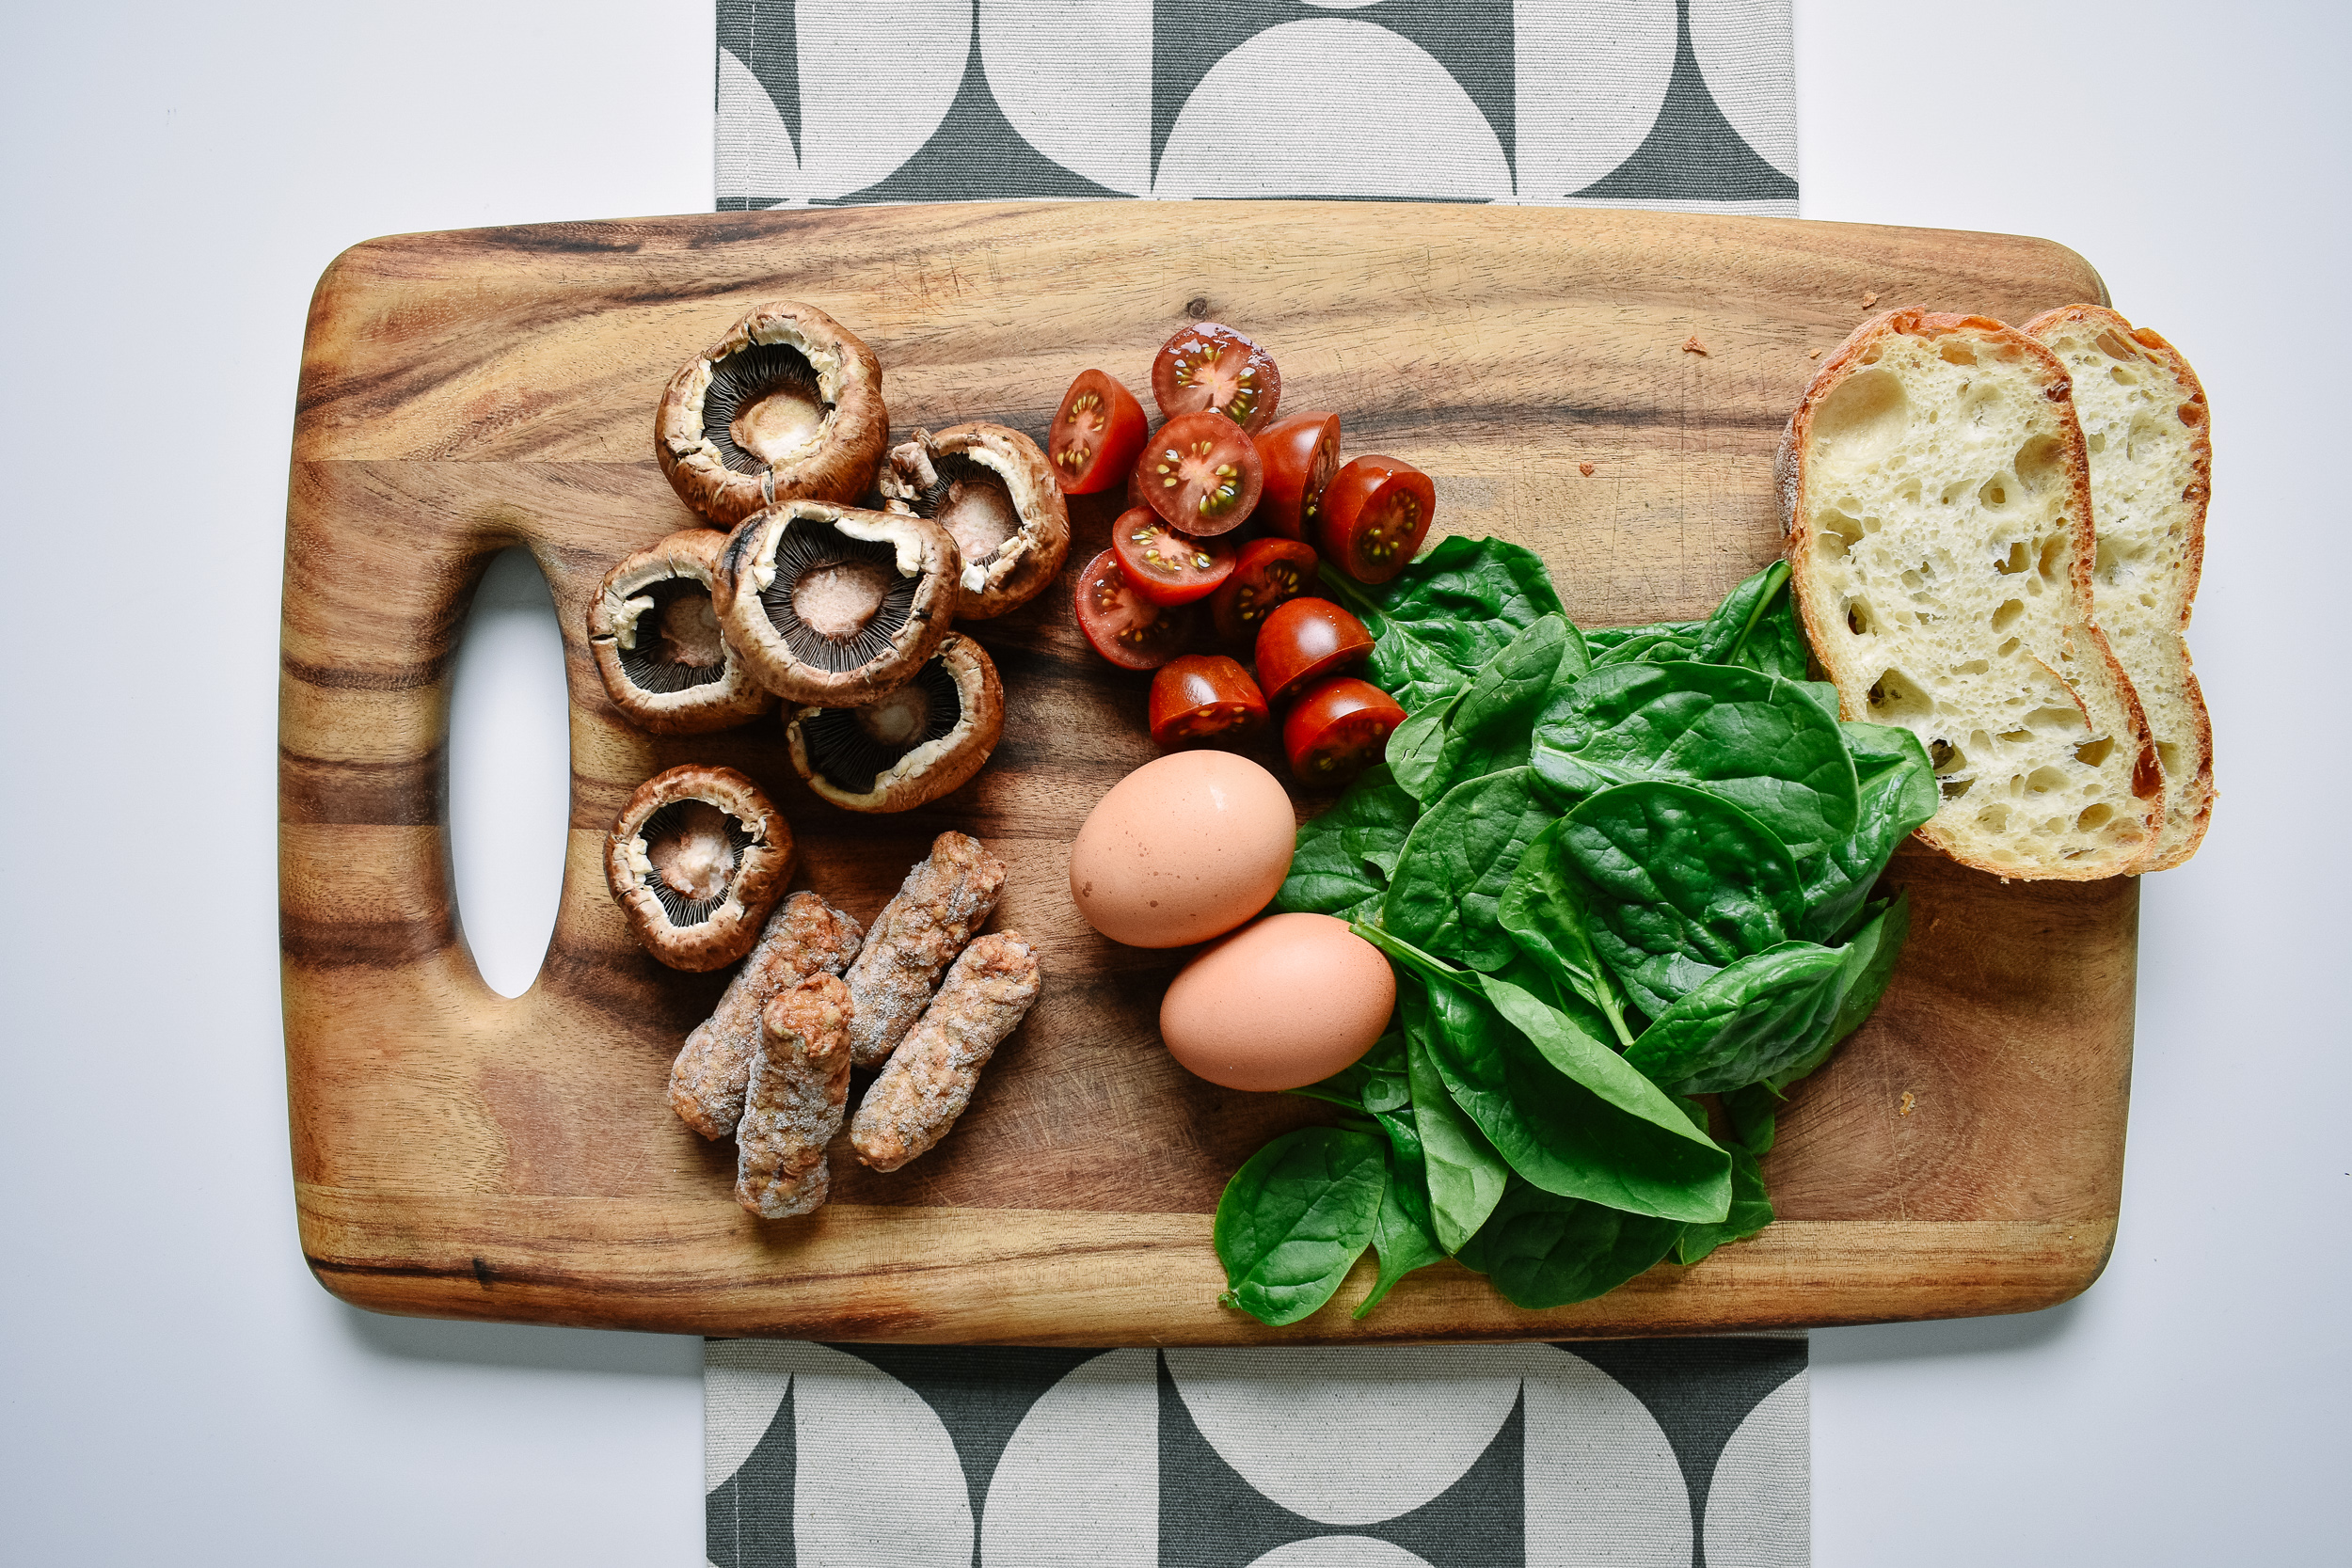 Stem the mushrooms and slice the tomatoes